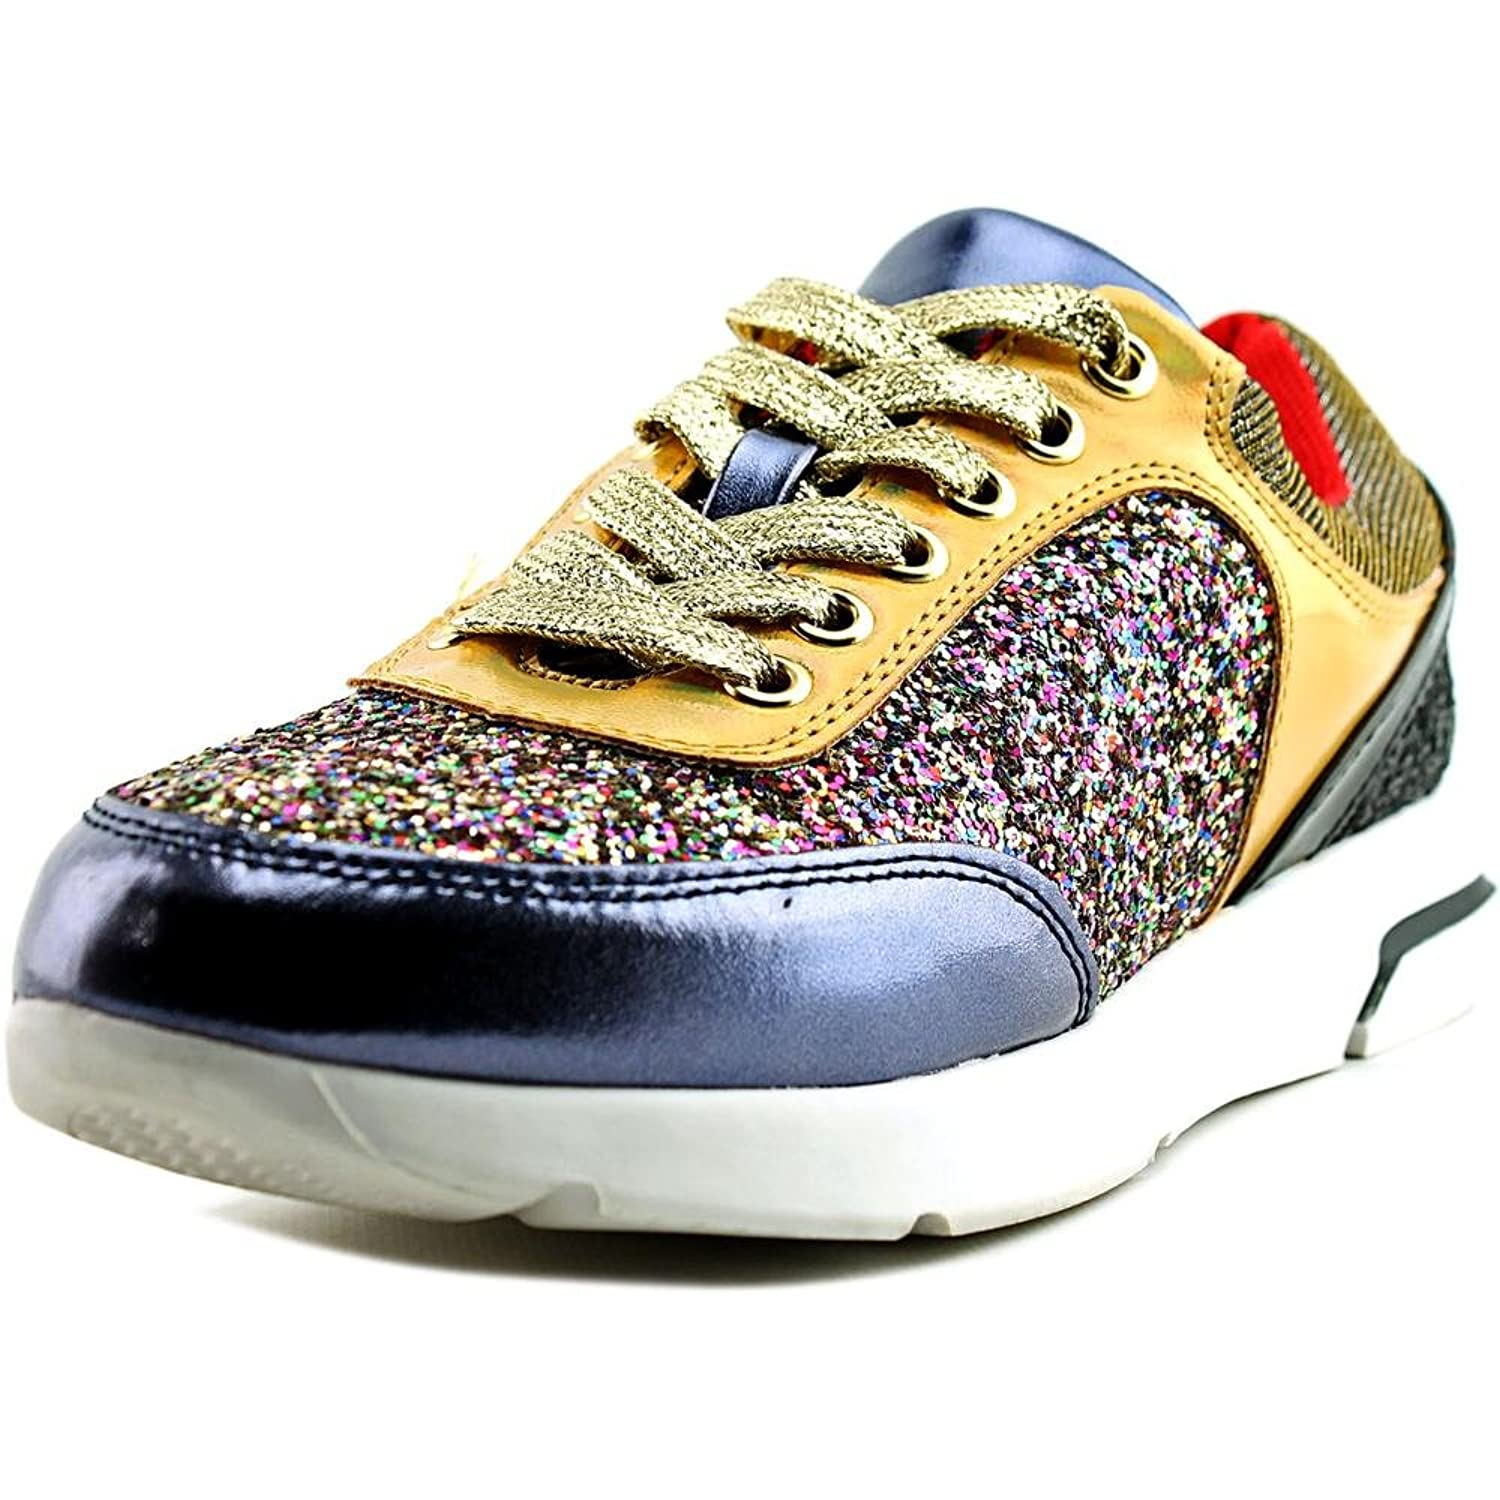 Madden Girl Hayyess Women Canvas Multi Color Fashion Sneakers